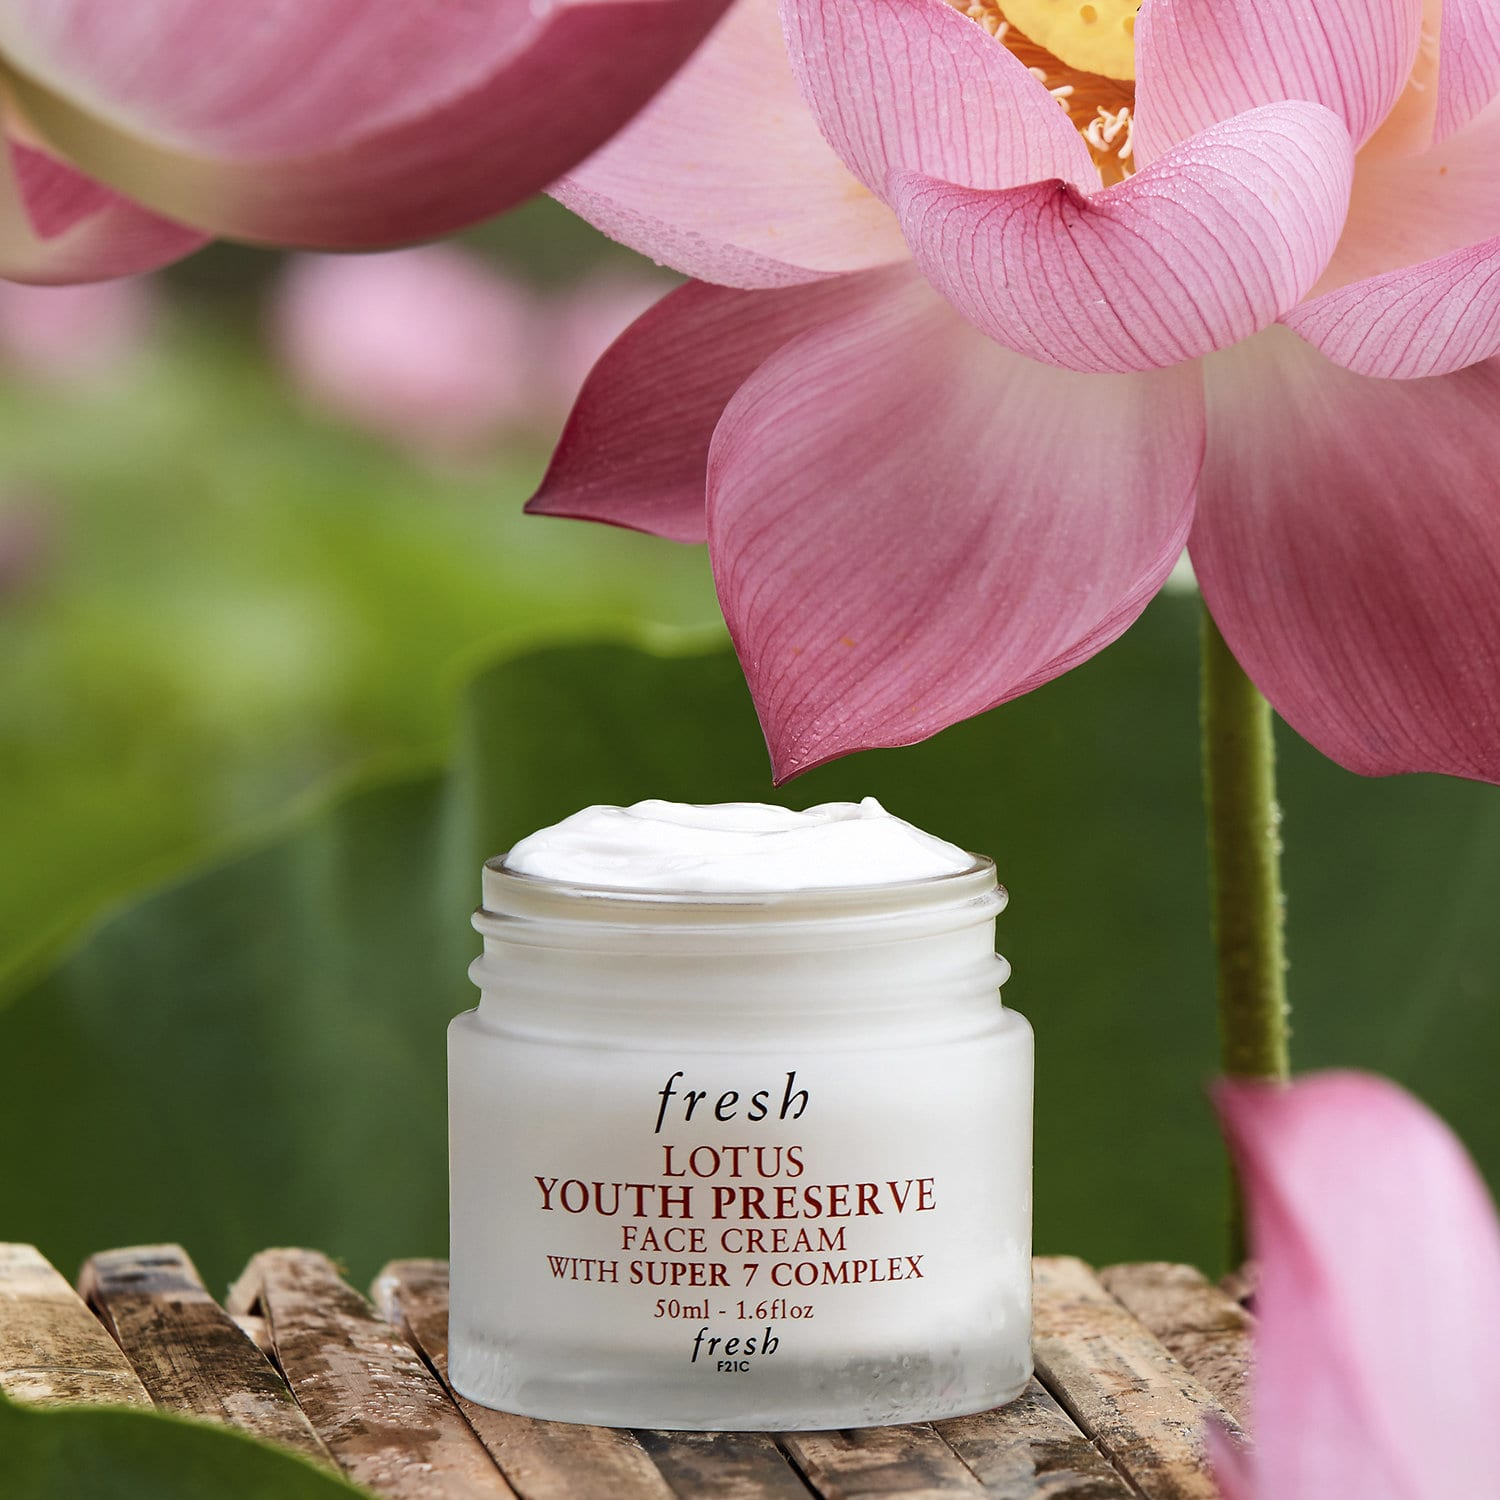 Fresh Lotus Youth Preserve Face Cream With Super 7 Complex.